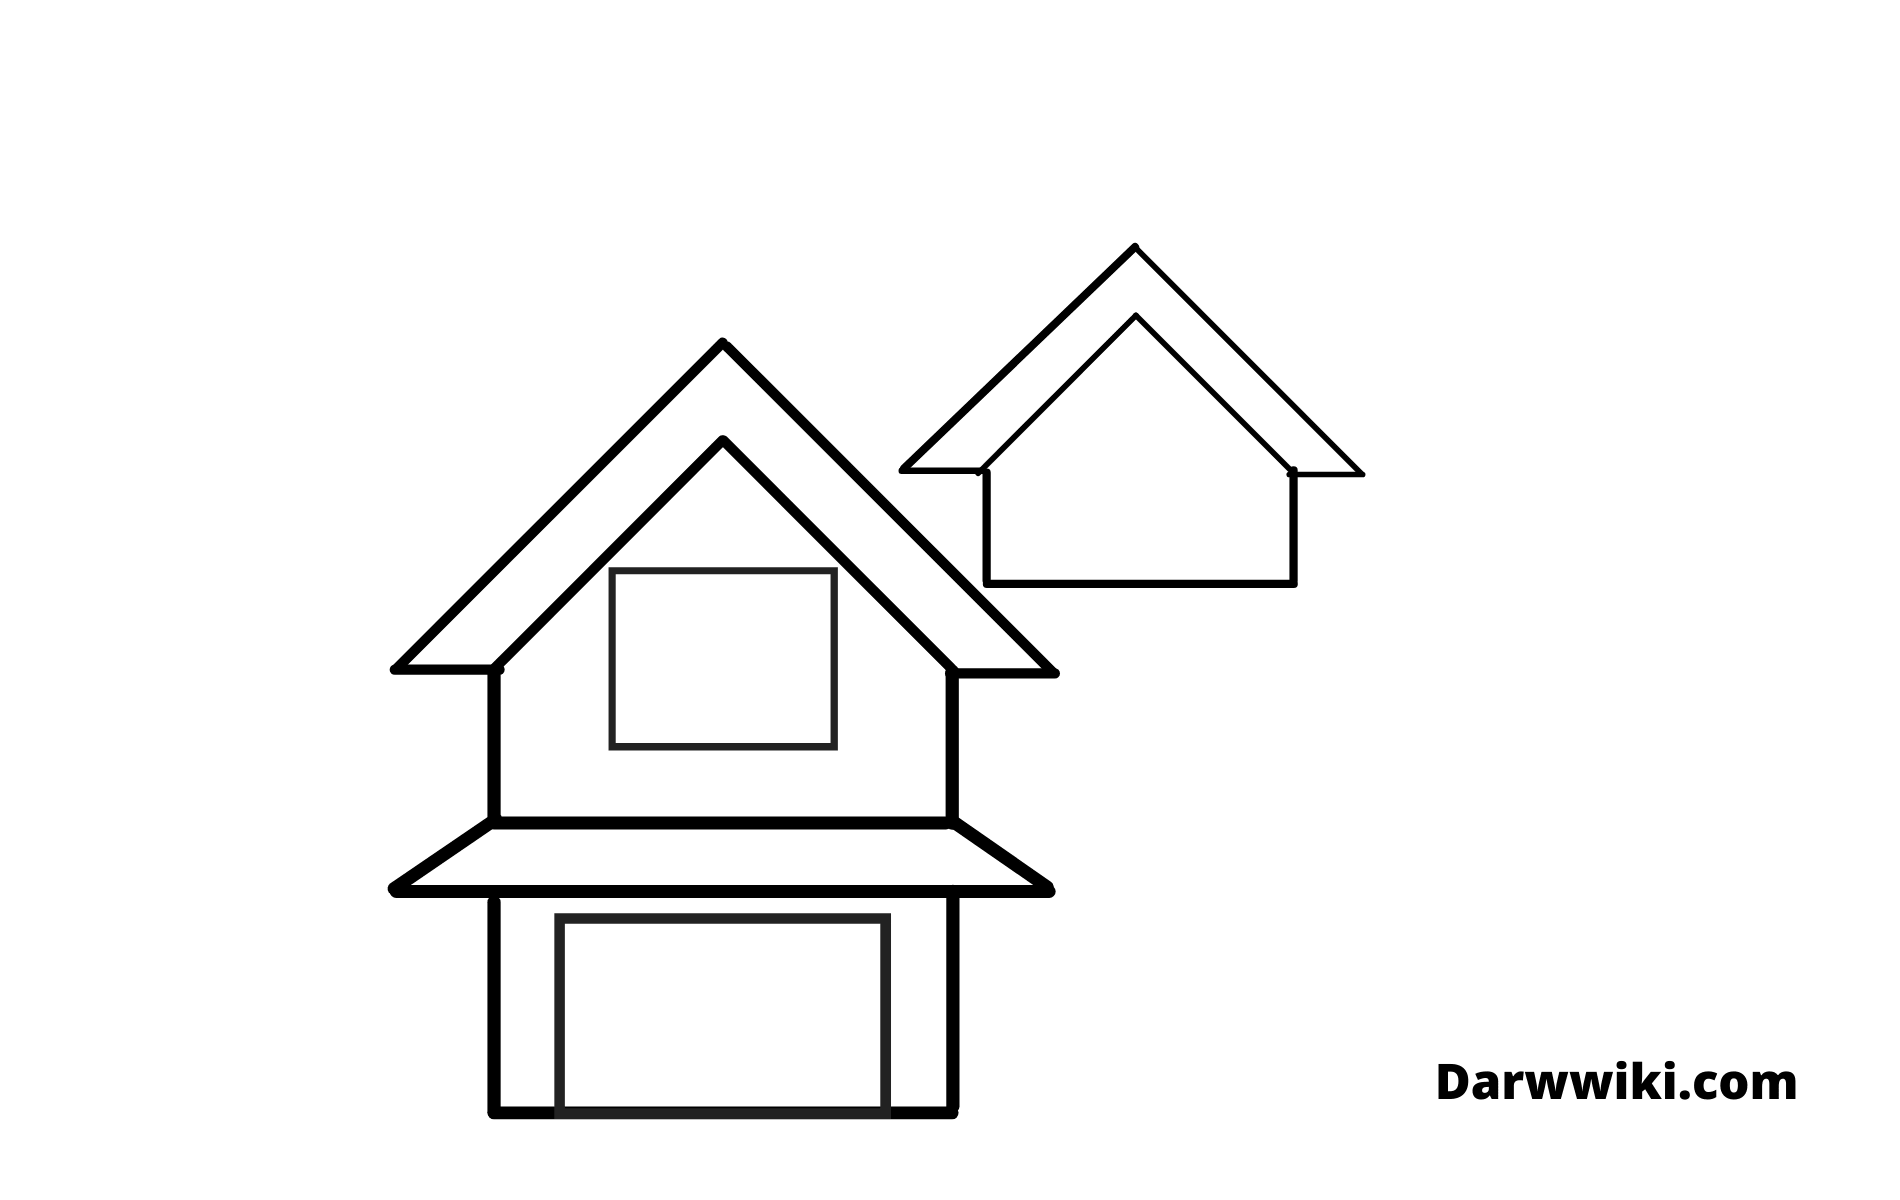 Draw house Step 4- Draw Part Section of the House Roof